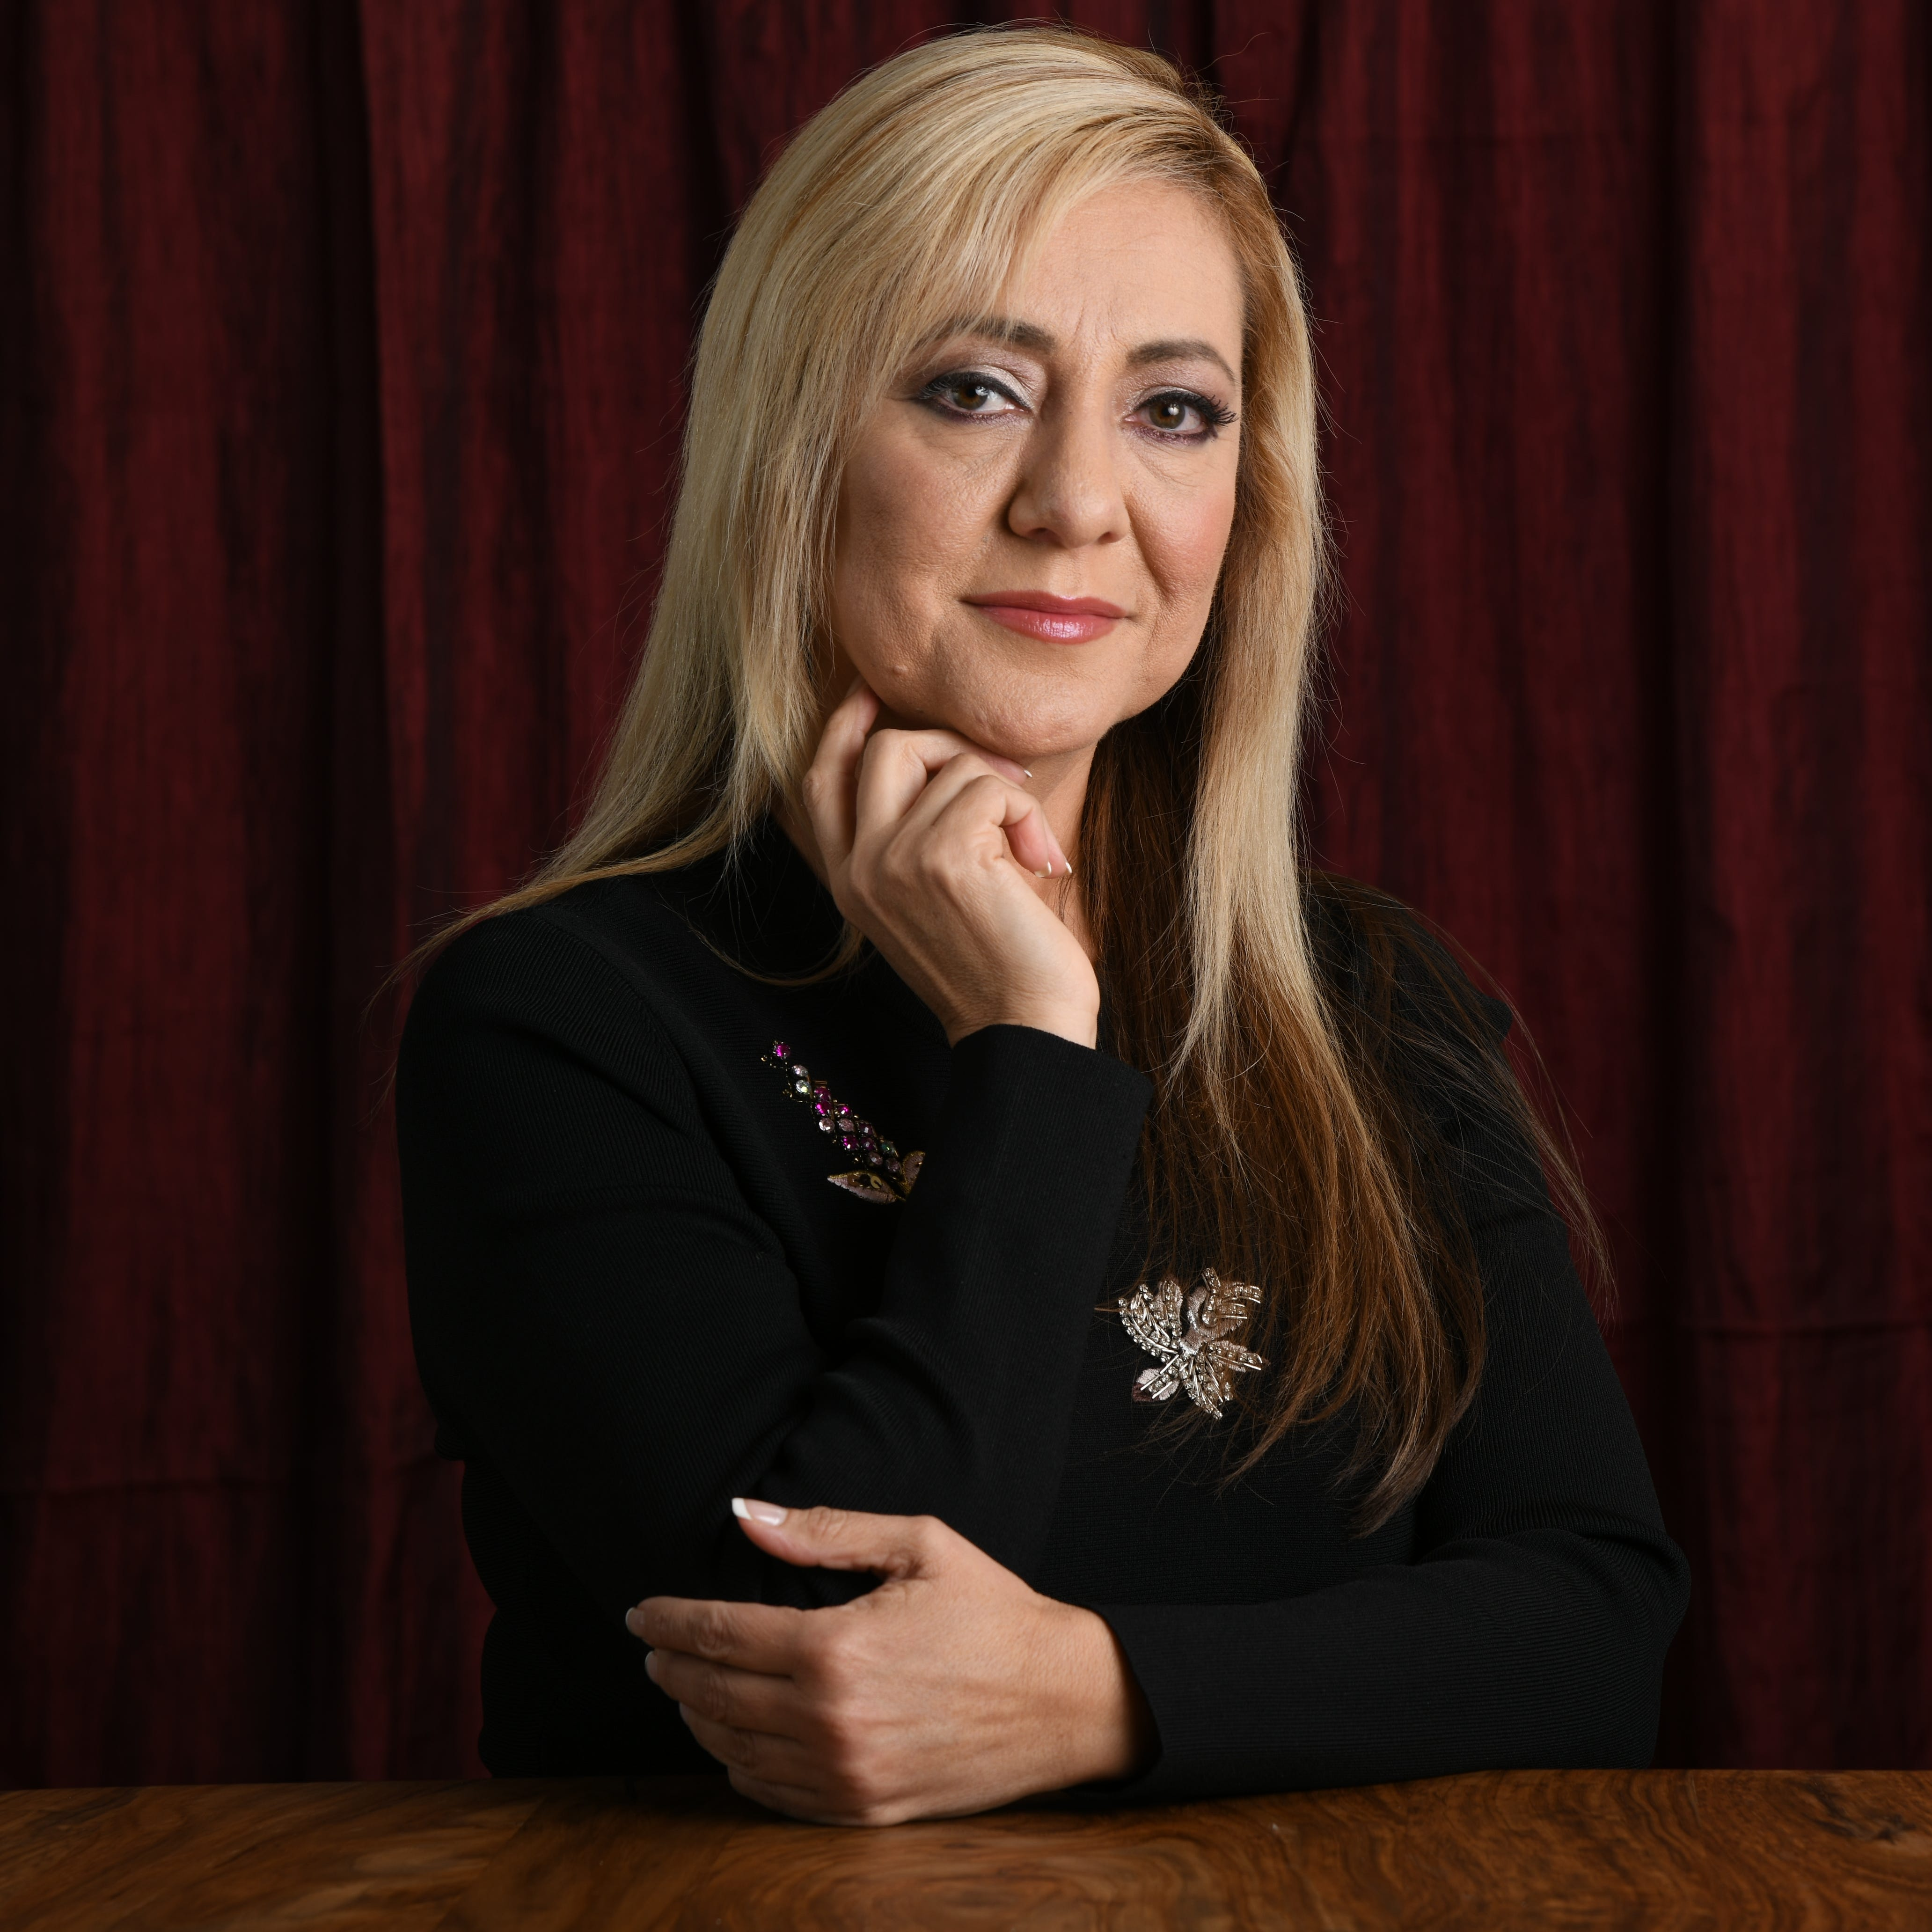 "2/6/19 12:56:00 PM -- Los Angeles, CA, U.S.A  -- Portrait of Lorena Bobbitt. She is the subject of a Amazon documentary series ""Lorena."" Photo by Robert Hanashiro, USA TODAY staff ORG XMIT:  RH 137802 Lorena Bobbitt 02/06/2019 [Via MerlinFTP Drop]"